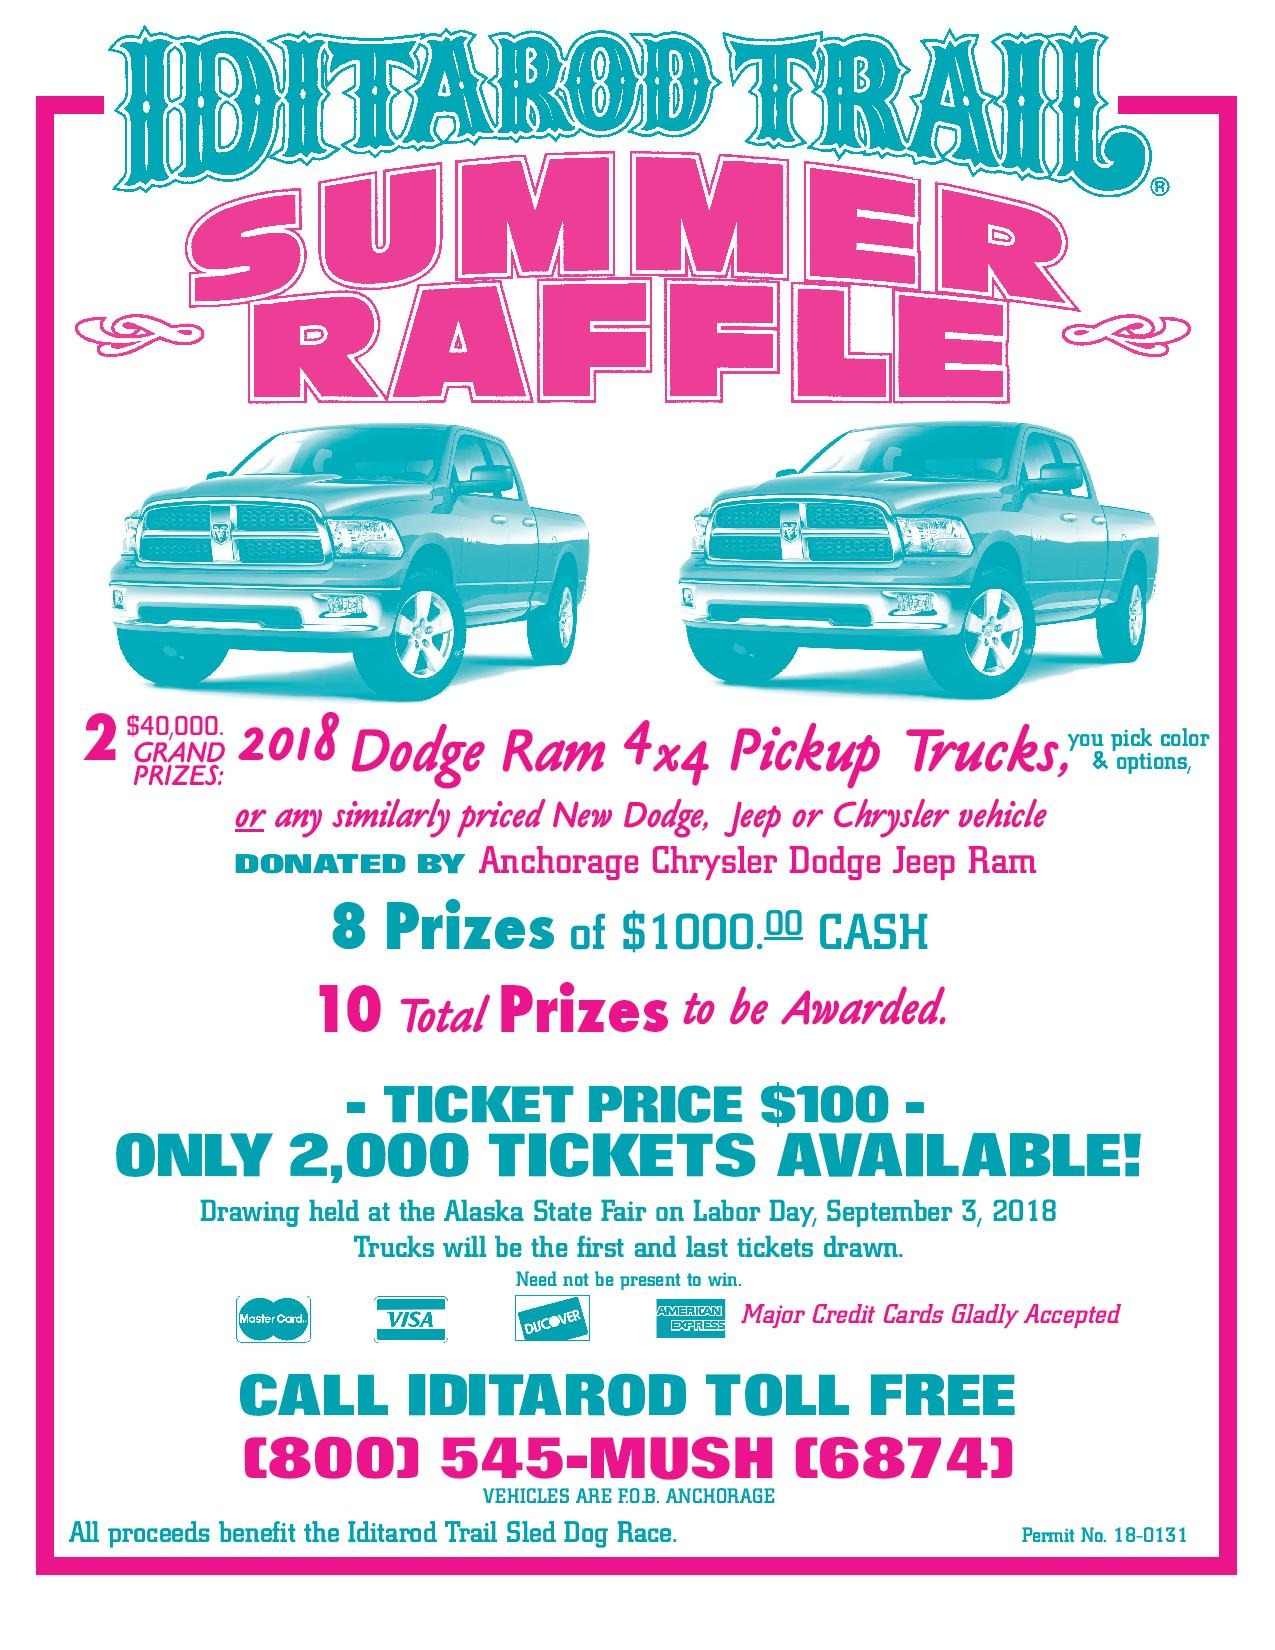 Summer Raffle Tickets Available! Call Now: 800 545 6874